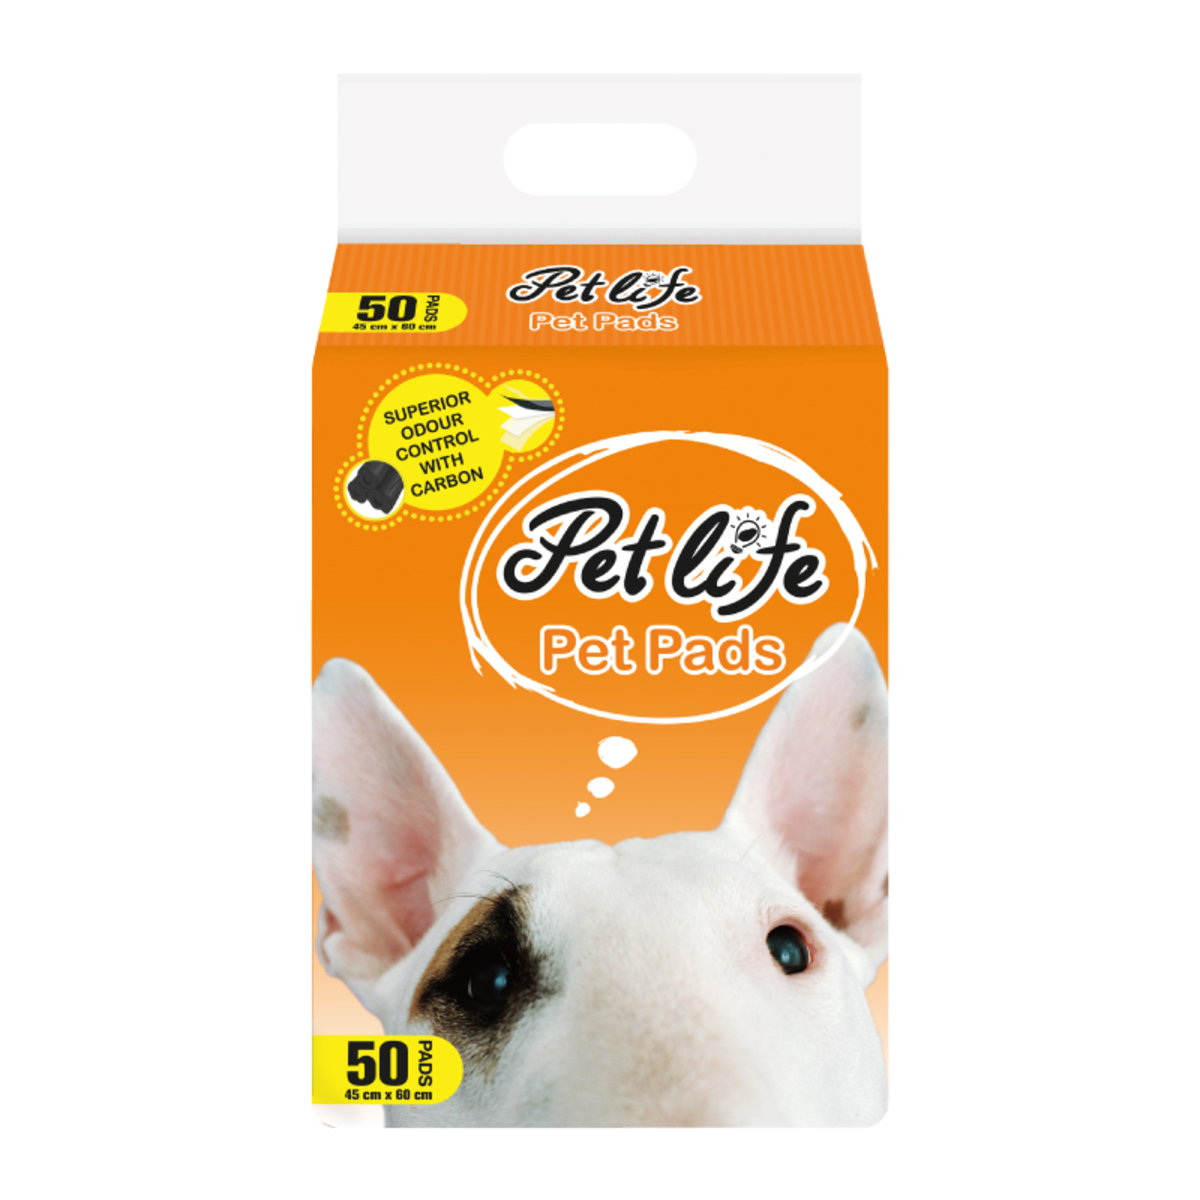 Pet Pads with Carbon_big - 45cm X 60cm (50pads)